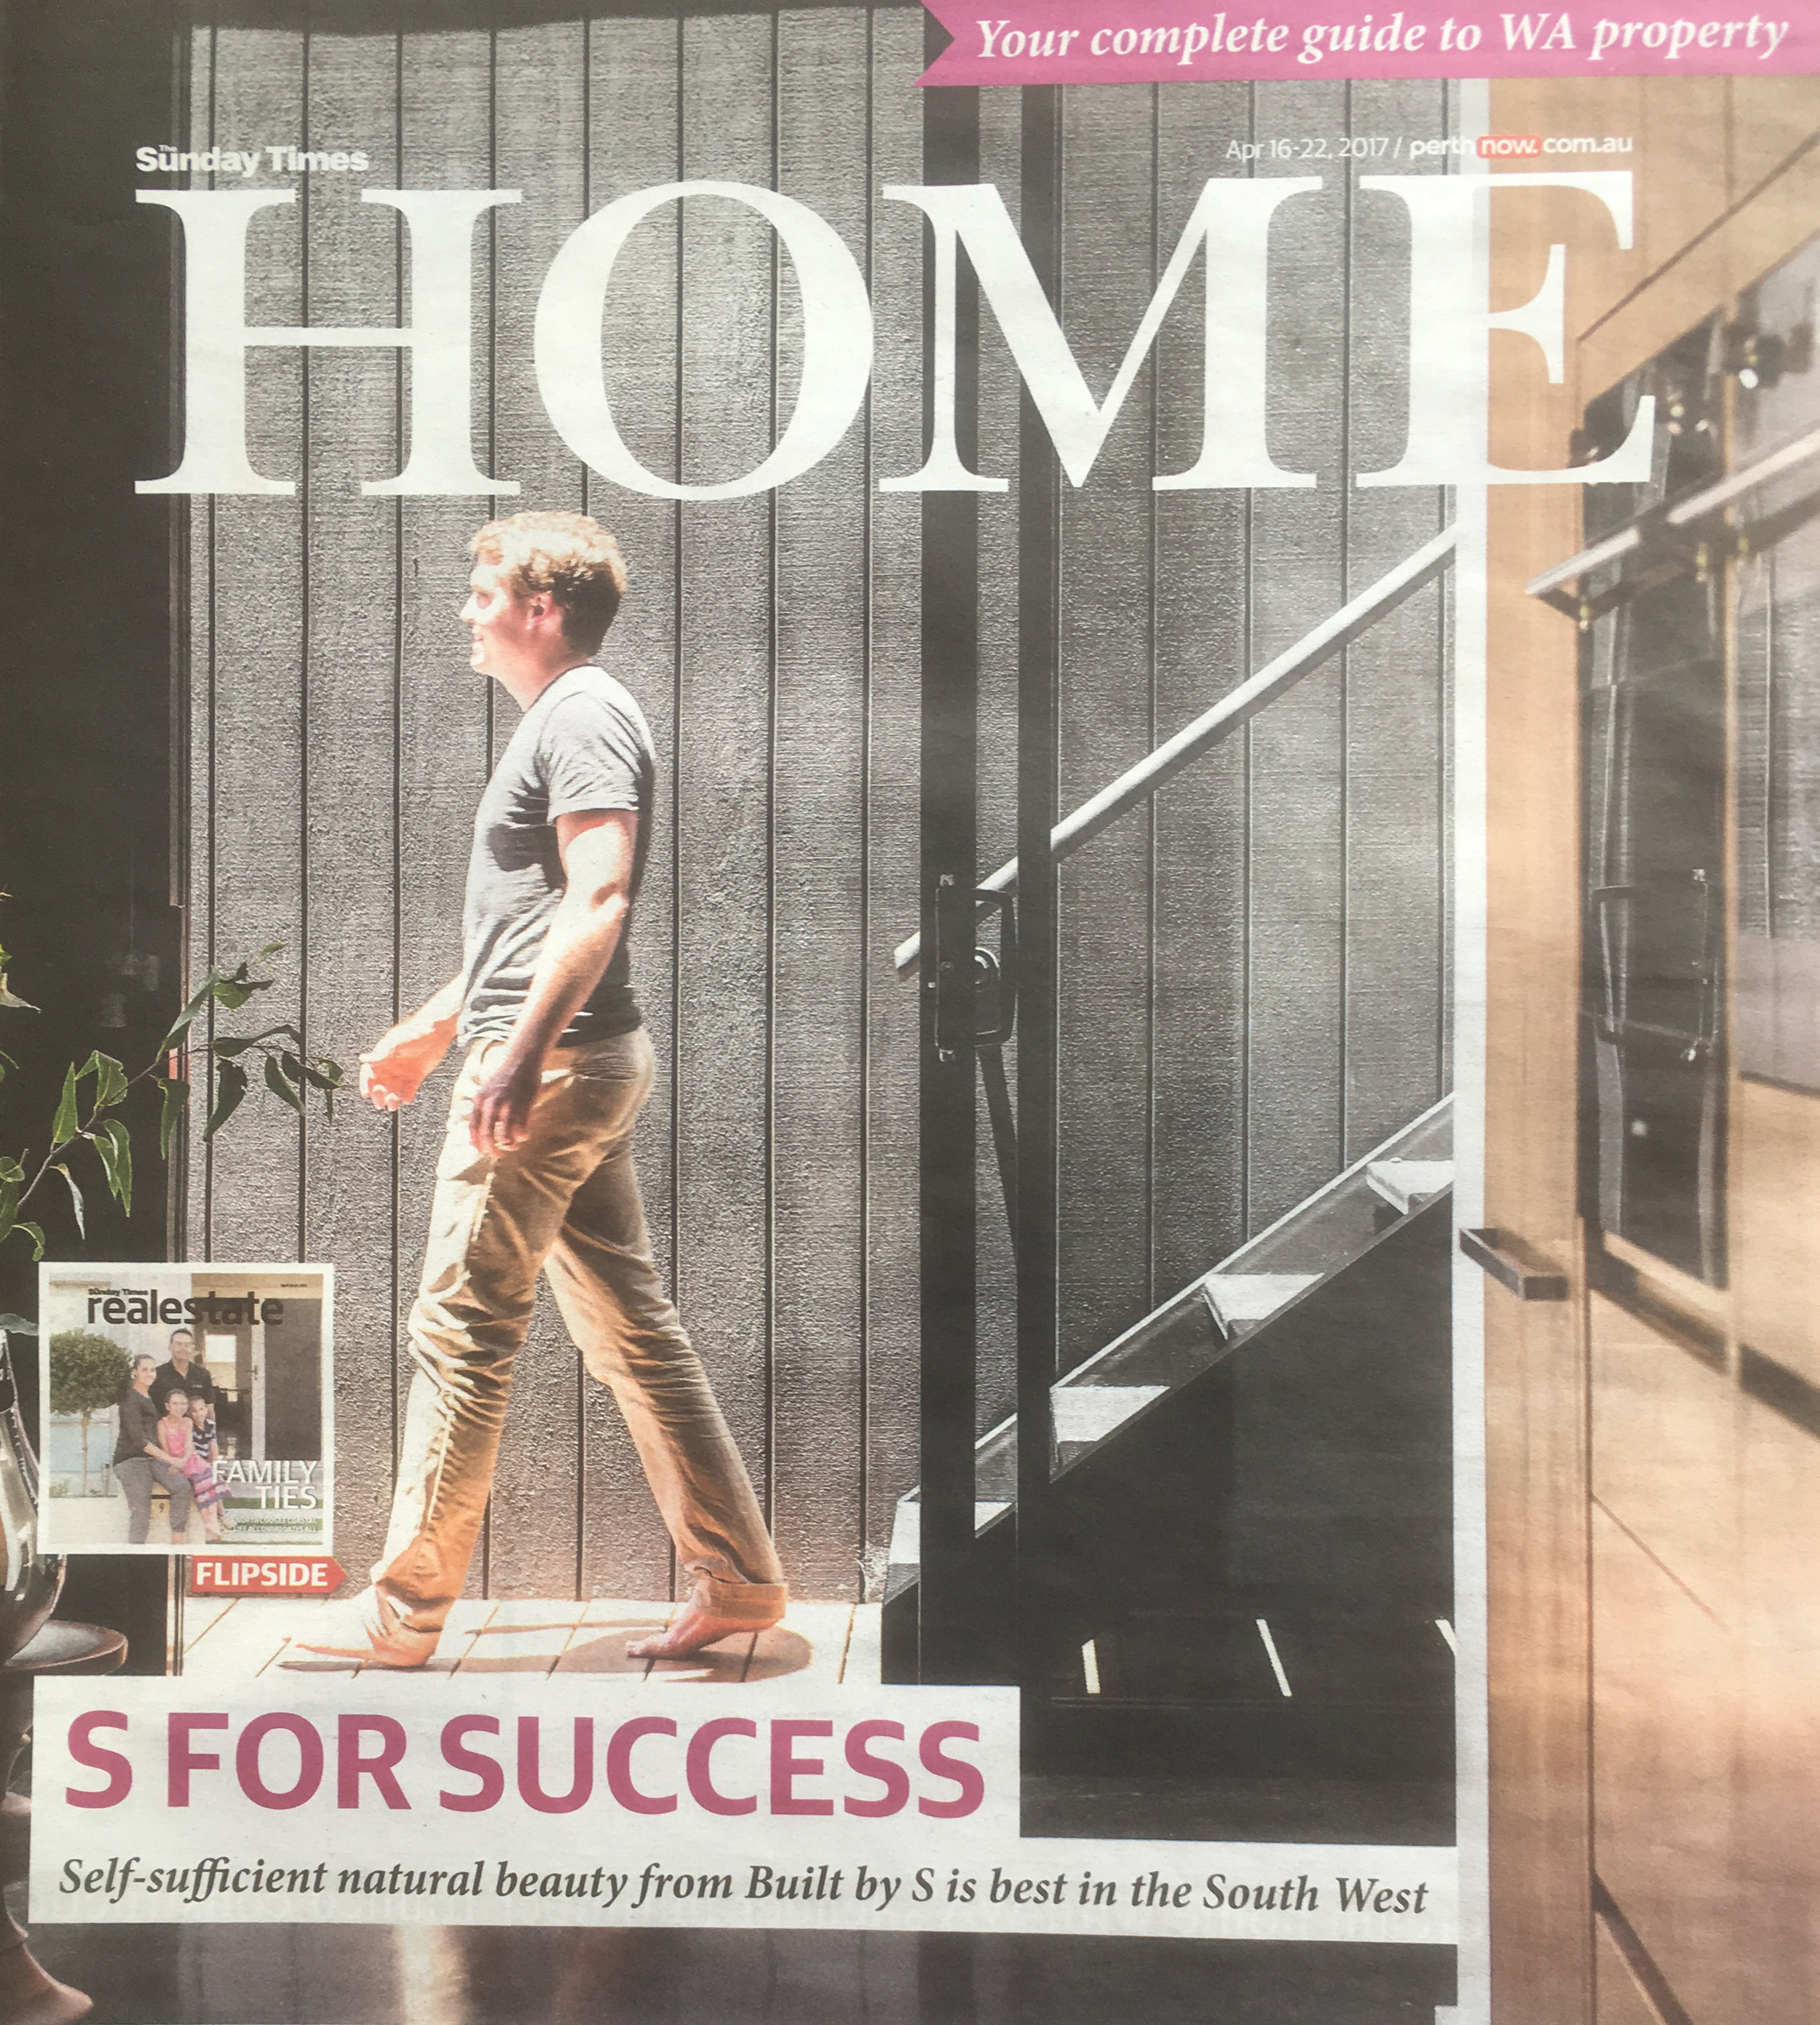 Sunday Times - Home Magazine   Western Australia  April 16 2017 , Easter Weekend